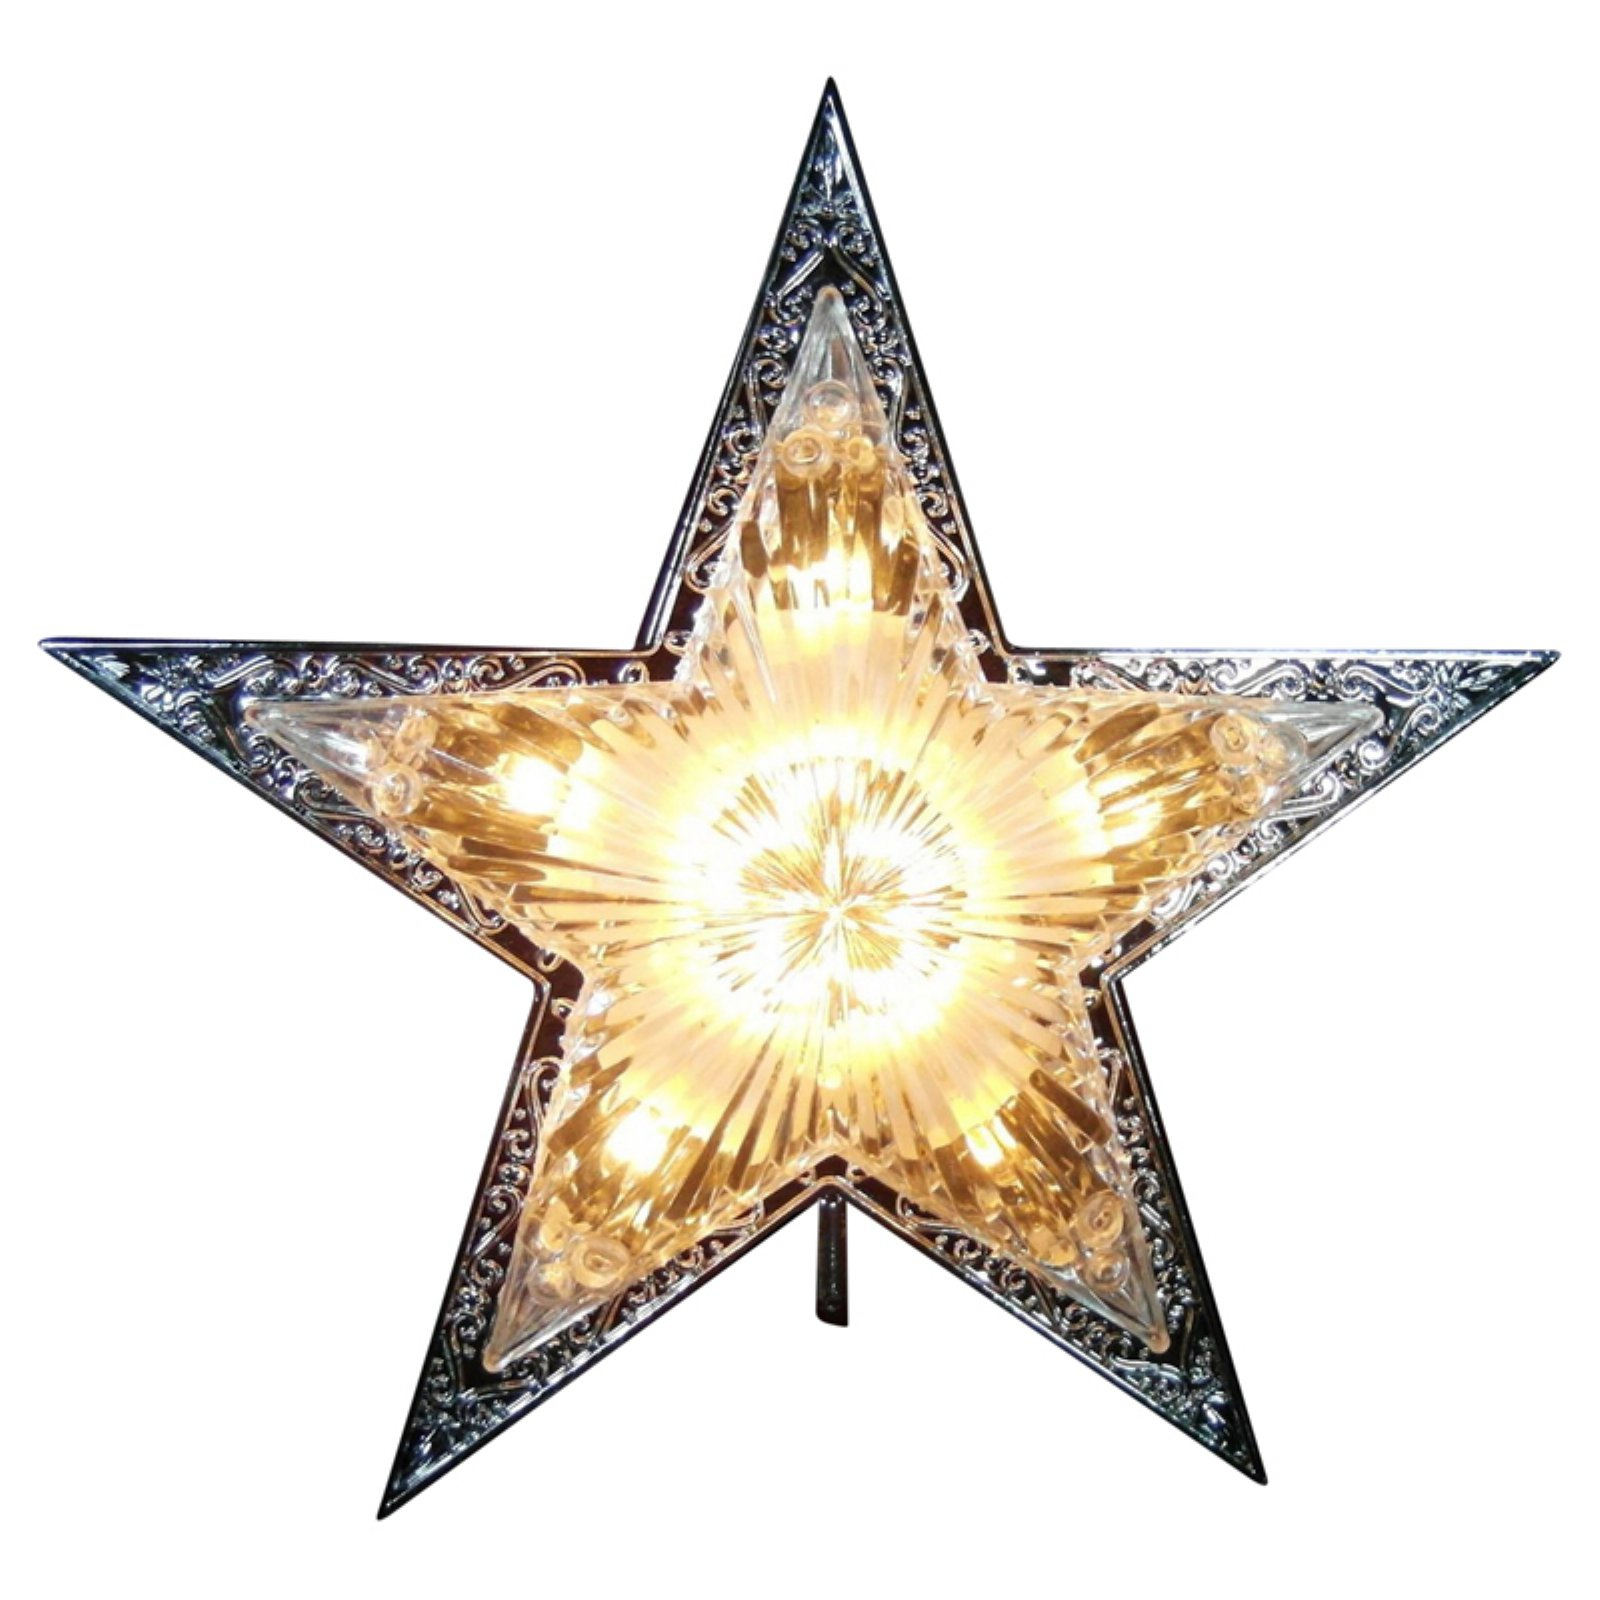 Northlight 10 in. Lighted Star Christmas Tree Topper